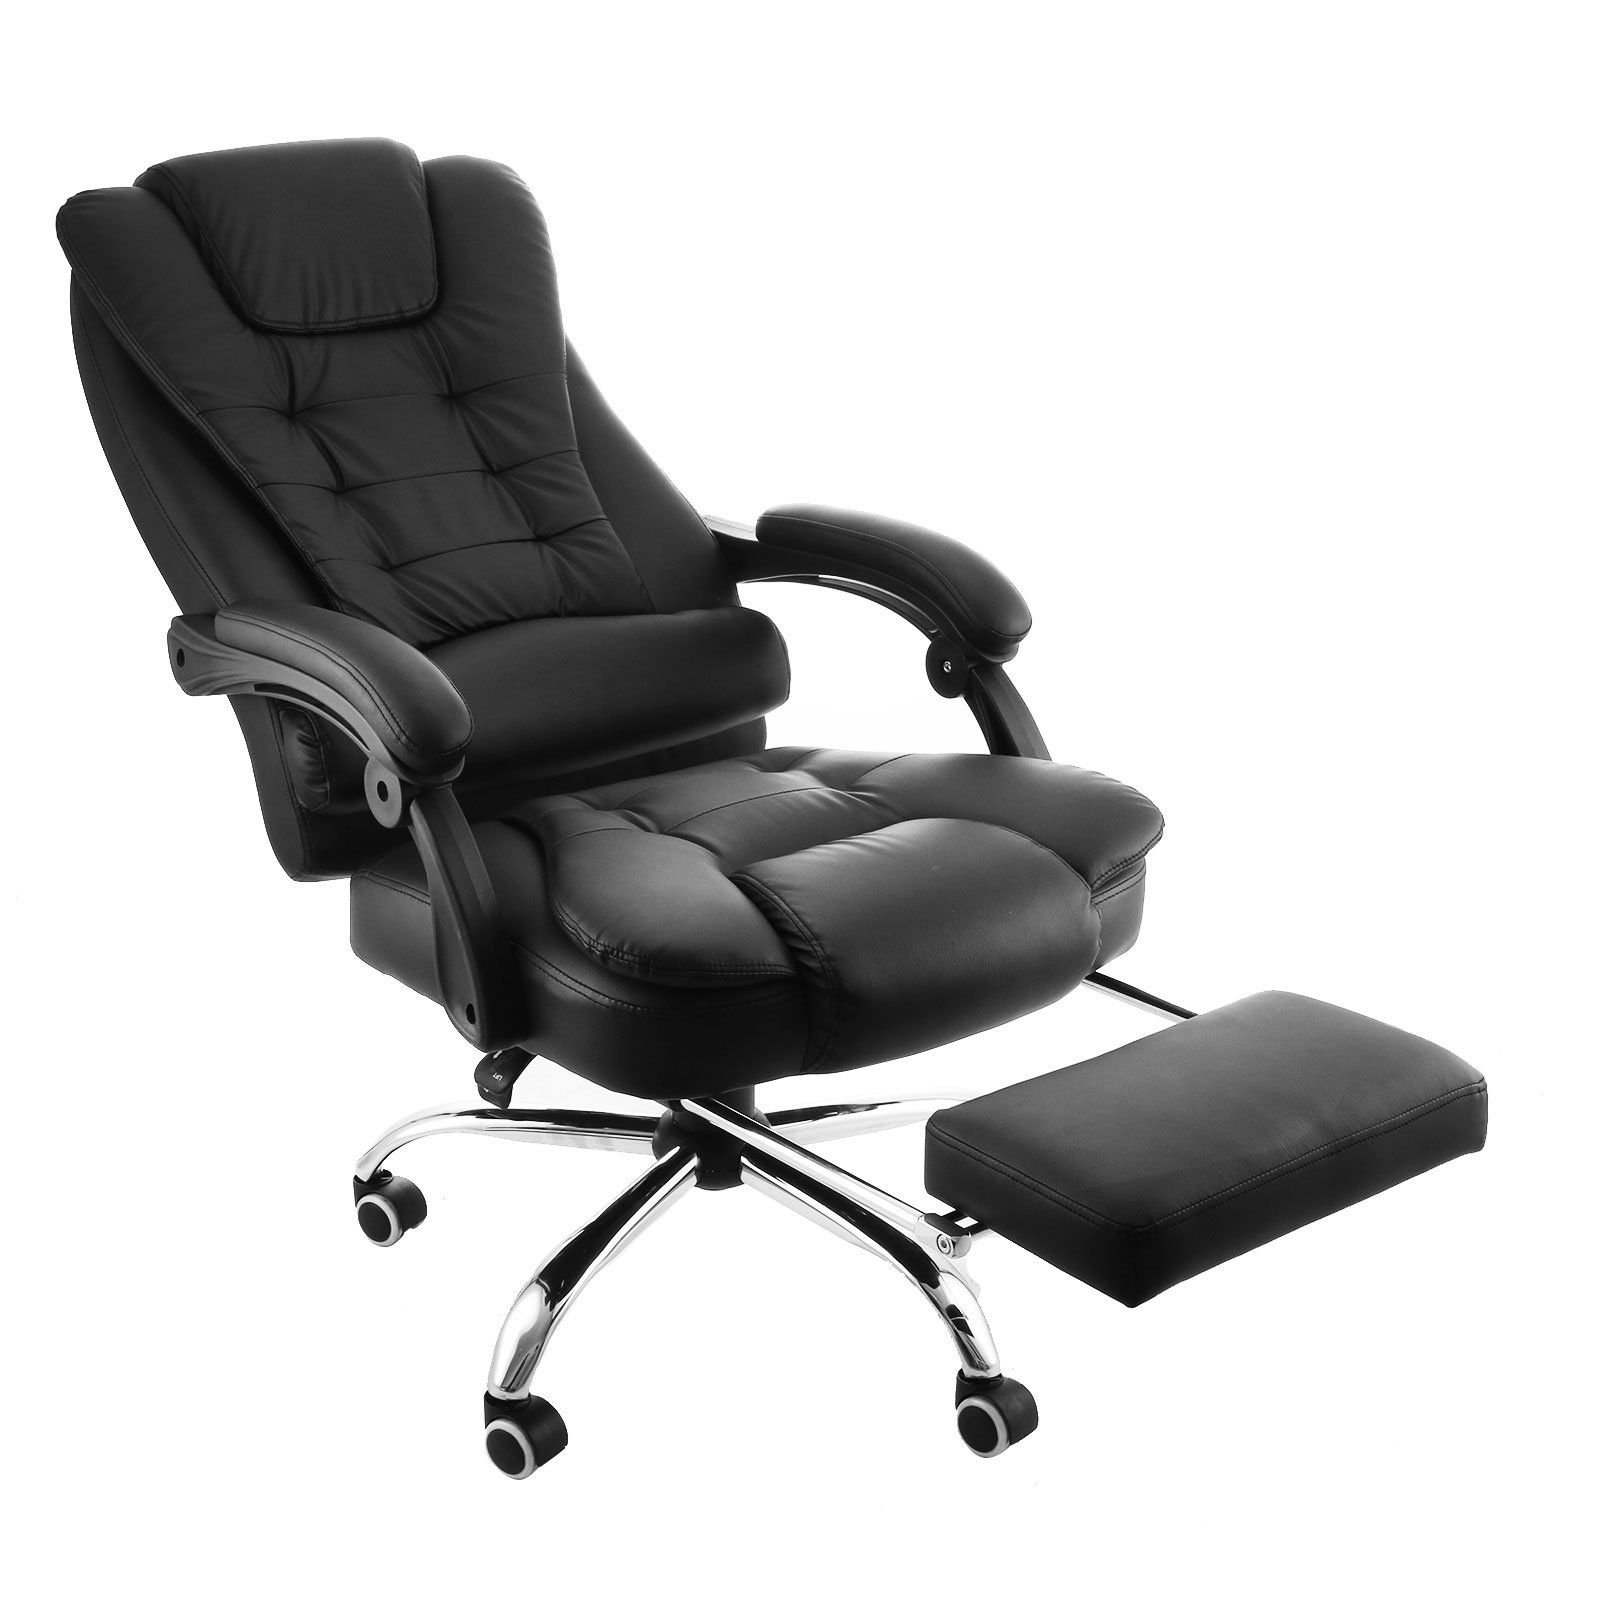 Happybuy Executive Swivel Office Chair with Footrest PU